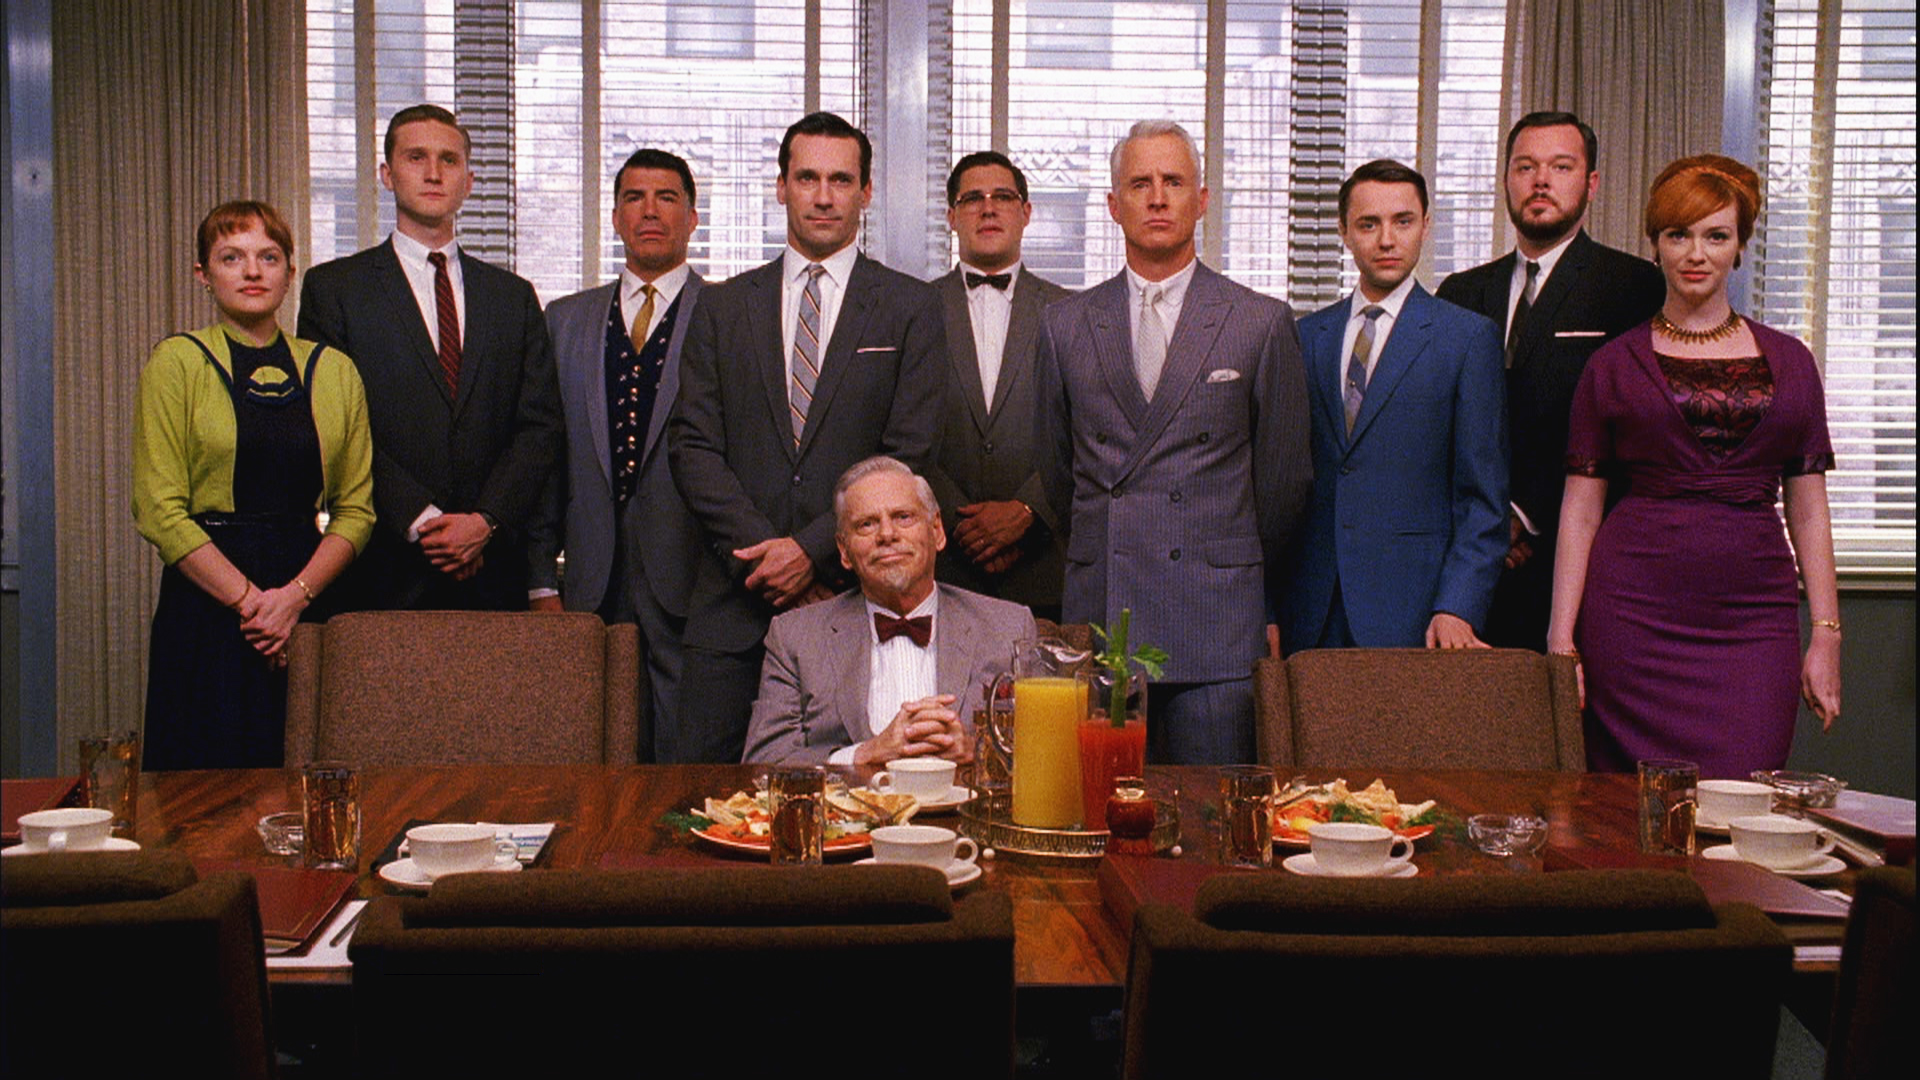 Celebrating 10 years of Mad Men, this is how the original cast looks like in their latest roles since the show ended. (Photo: Release)